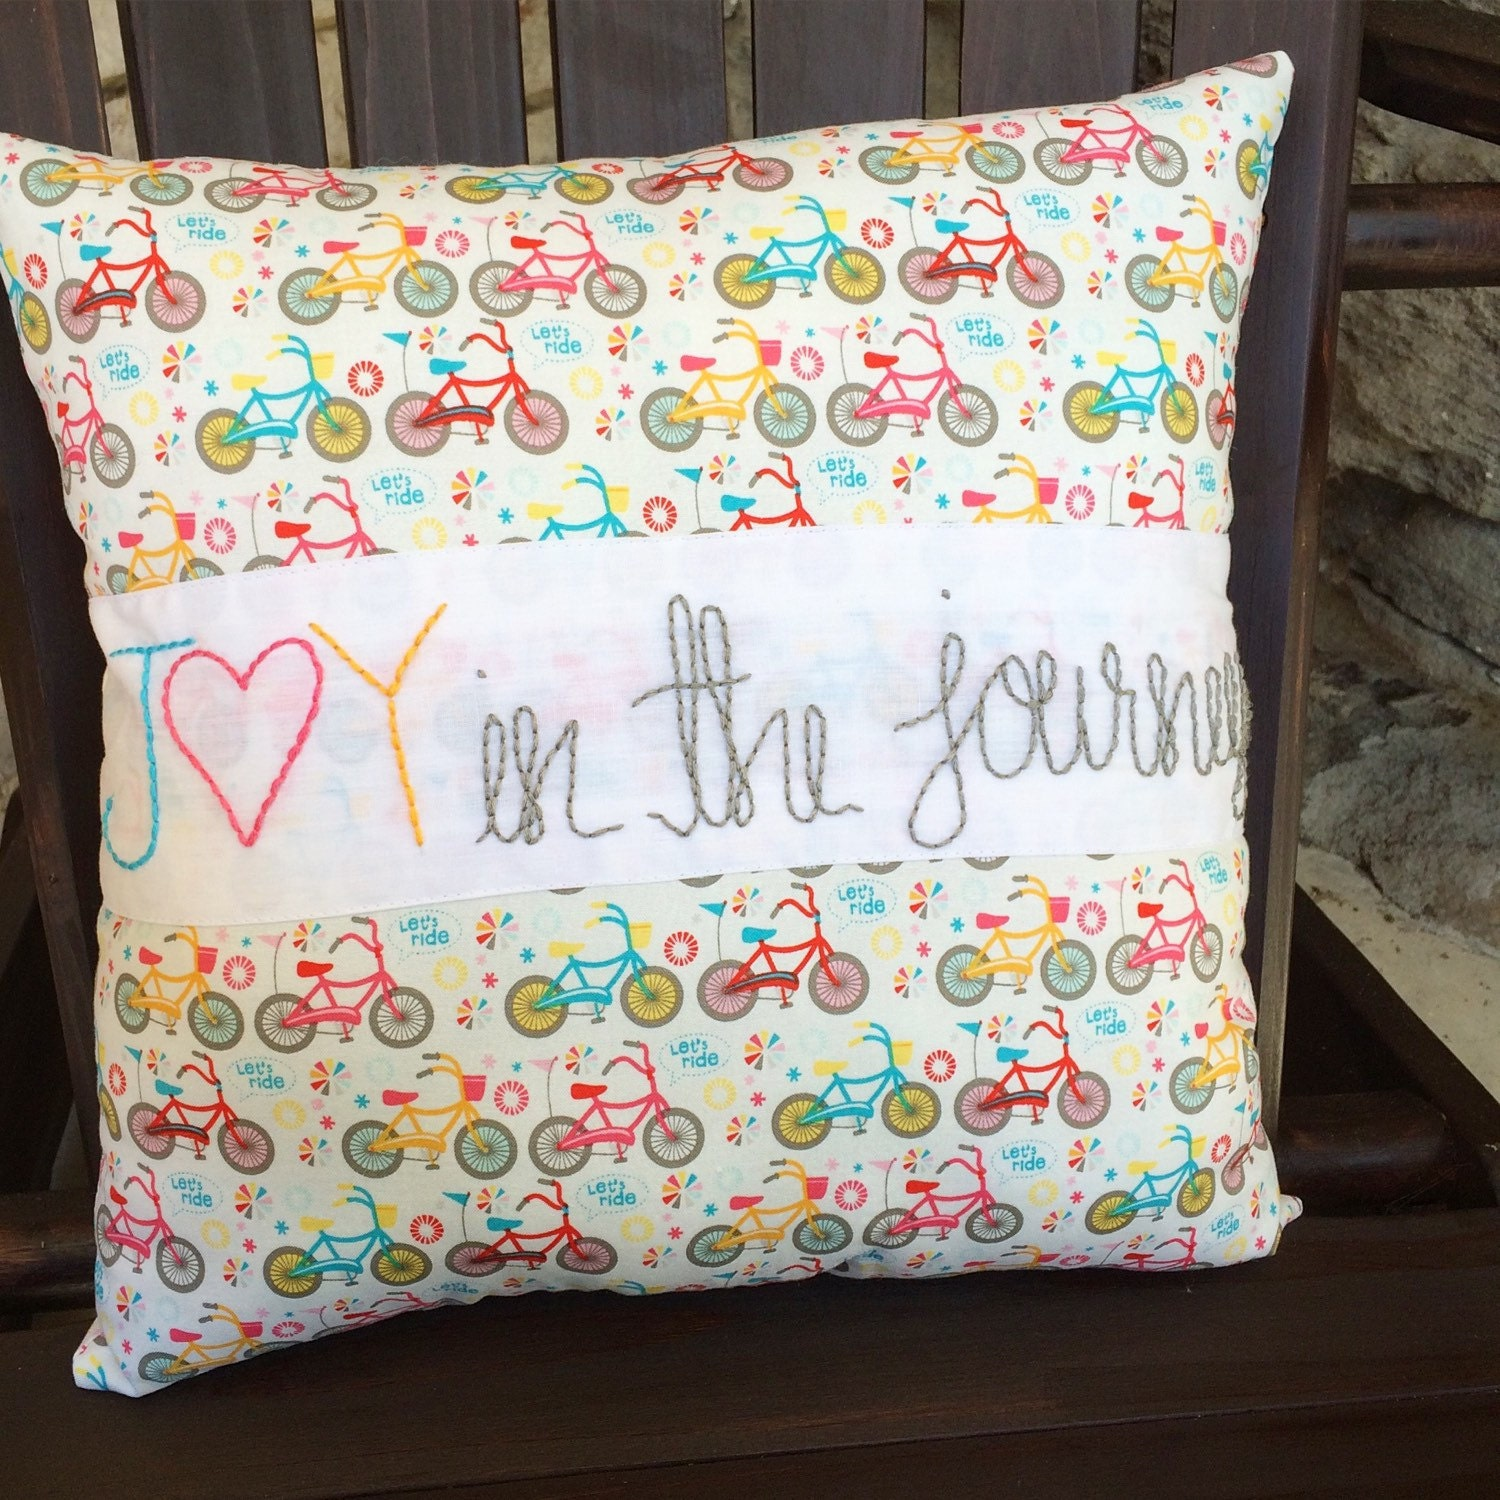 Joy in the journey Decorative Pillow